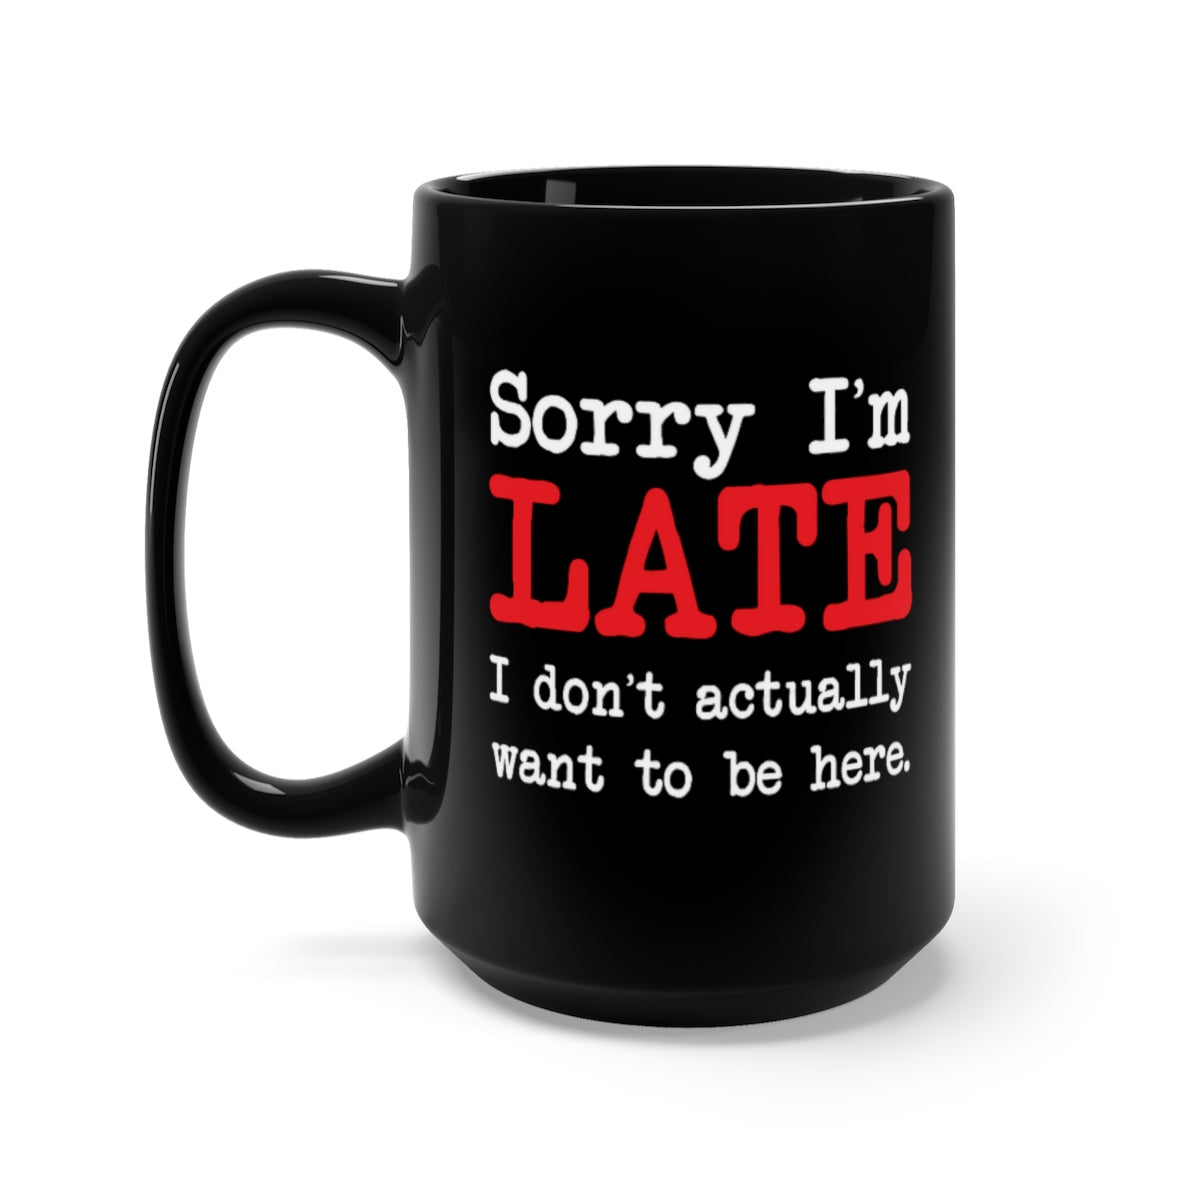 Sorry I'm Late - Black Mug 15oz ceramic - funny sarcastic mug